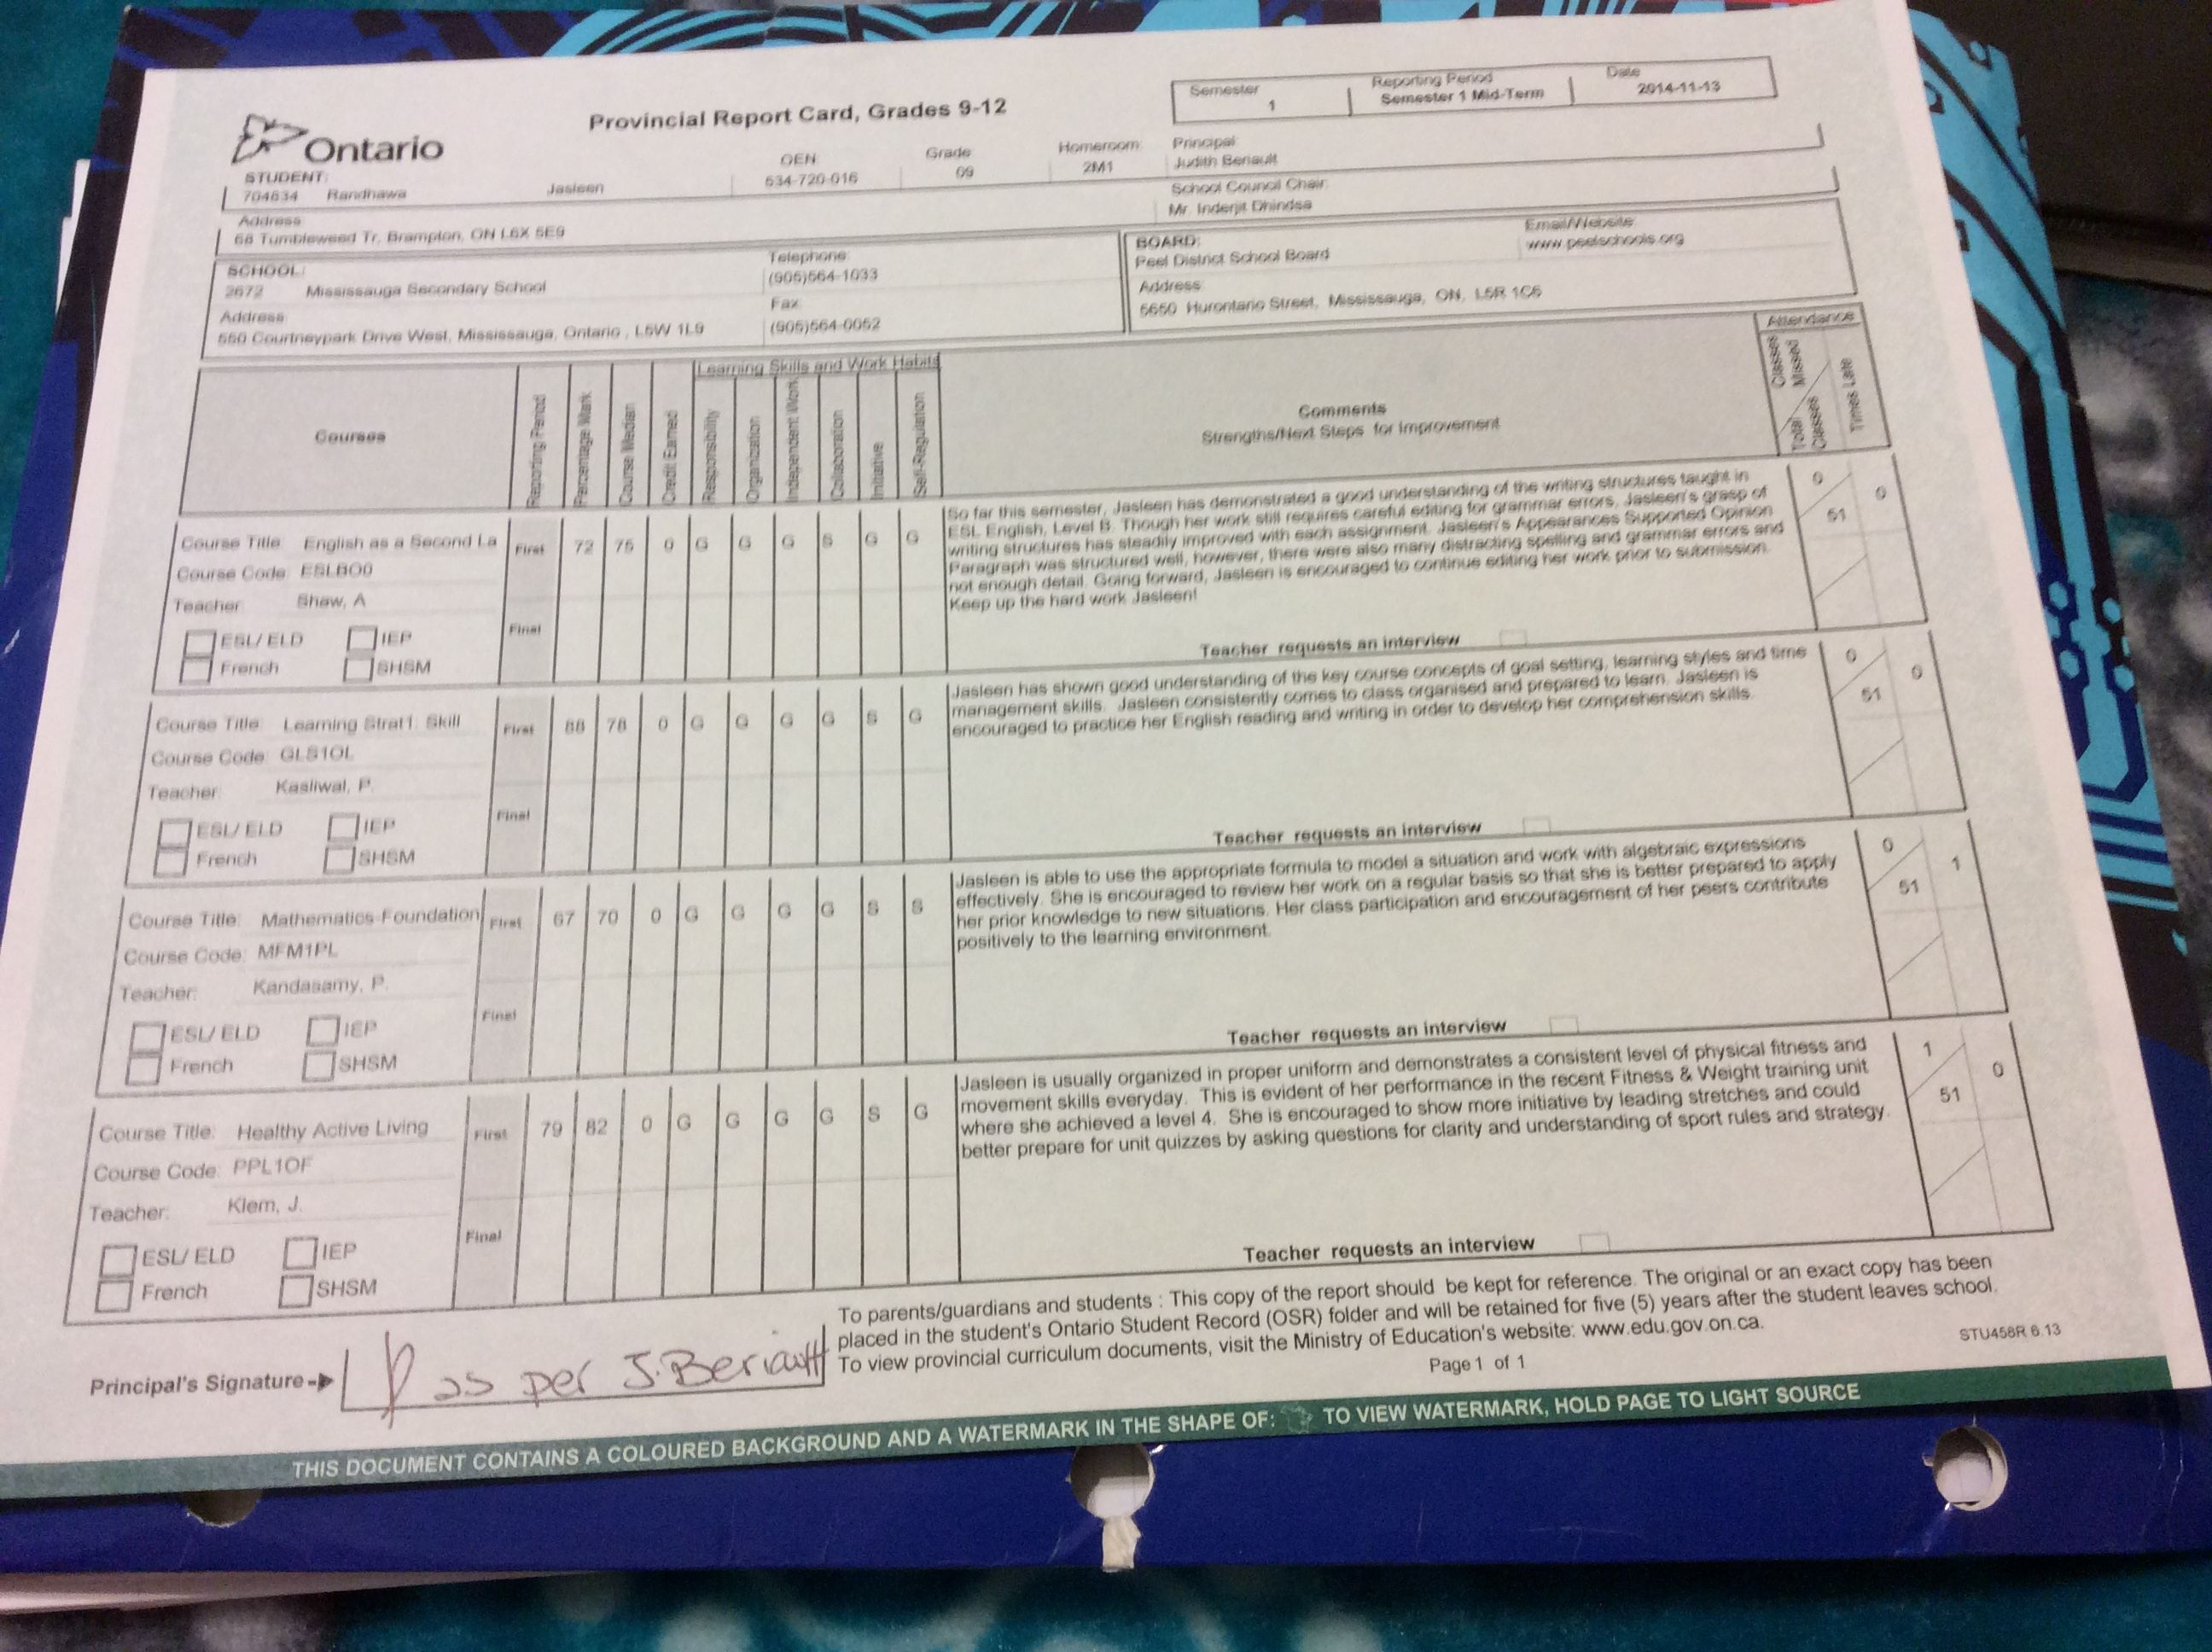 grade 9 report card  this is my report card in grade 7 | Cards, Personalized items